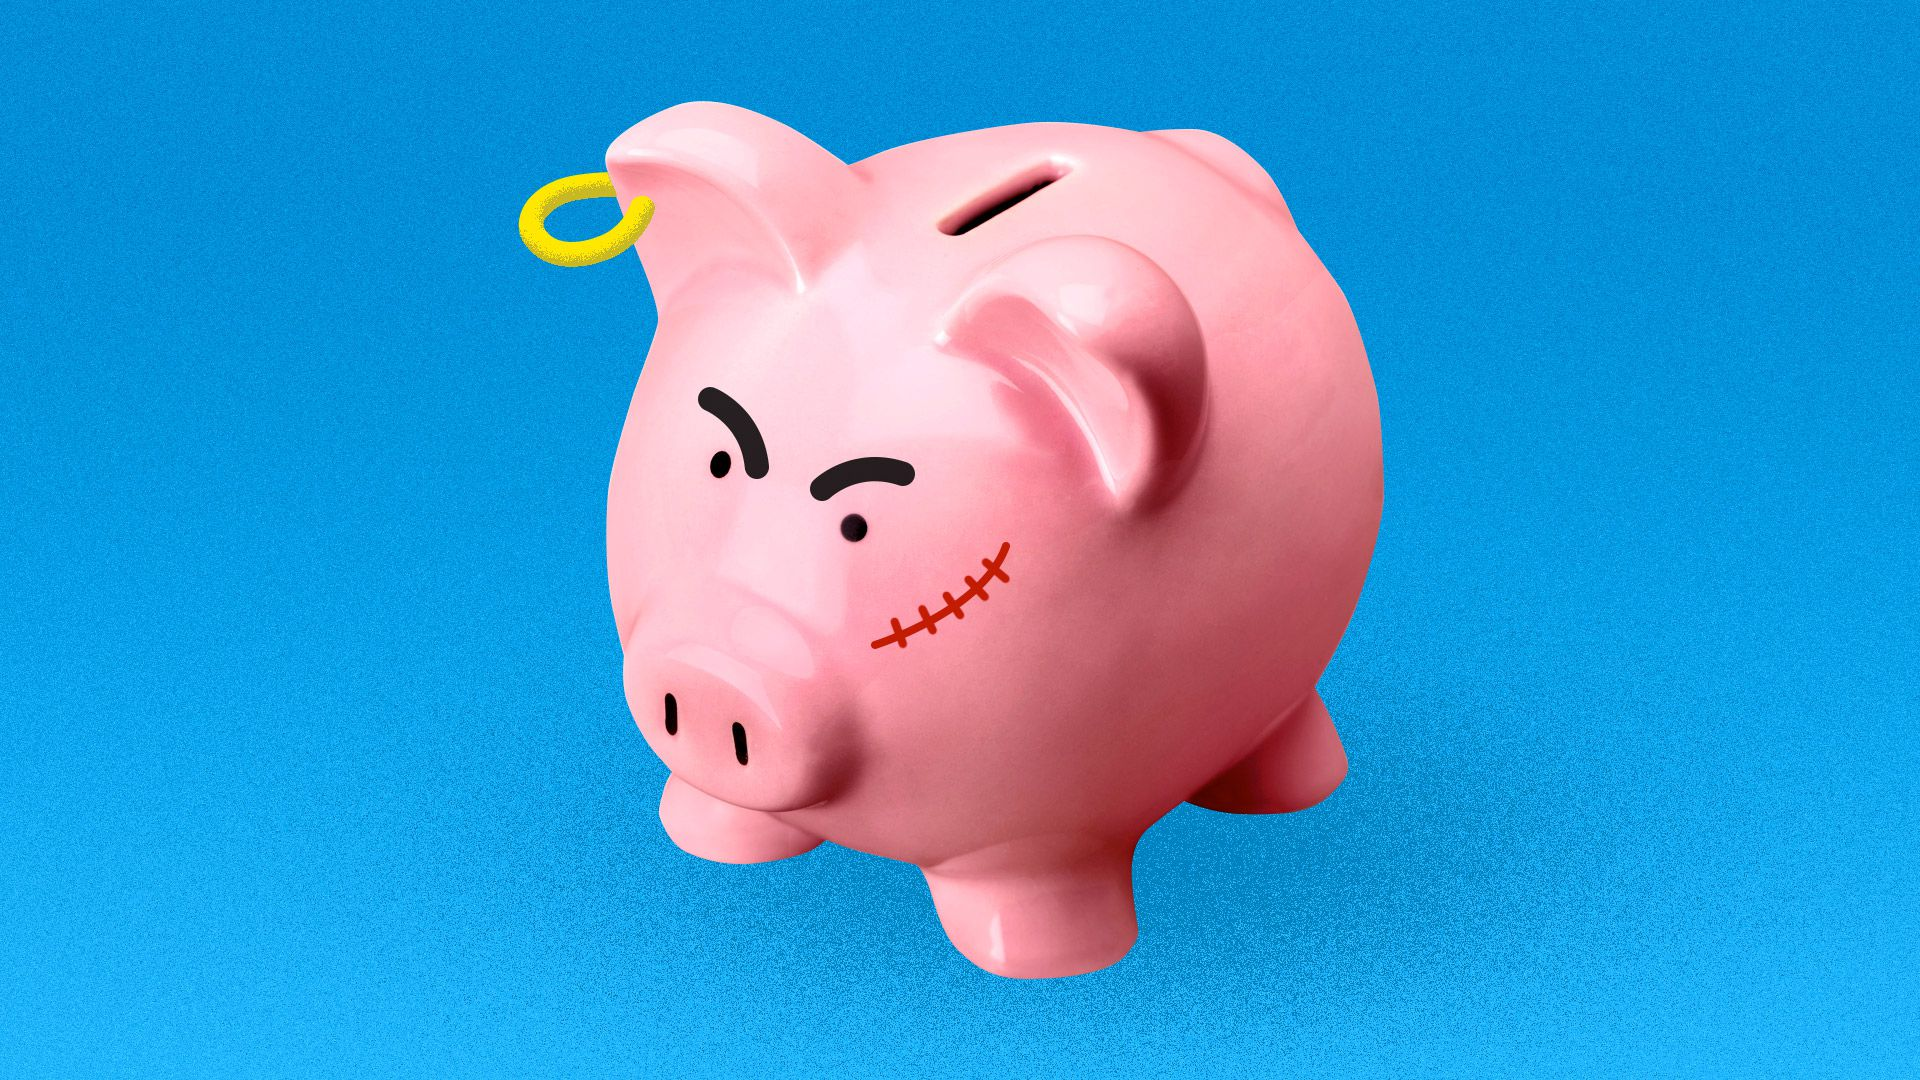 A piggy bank with aggressive features